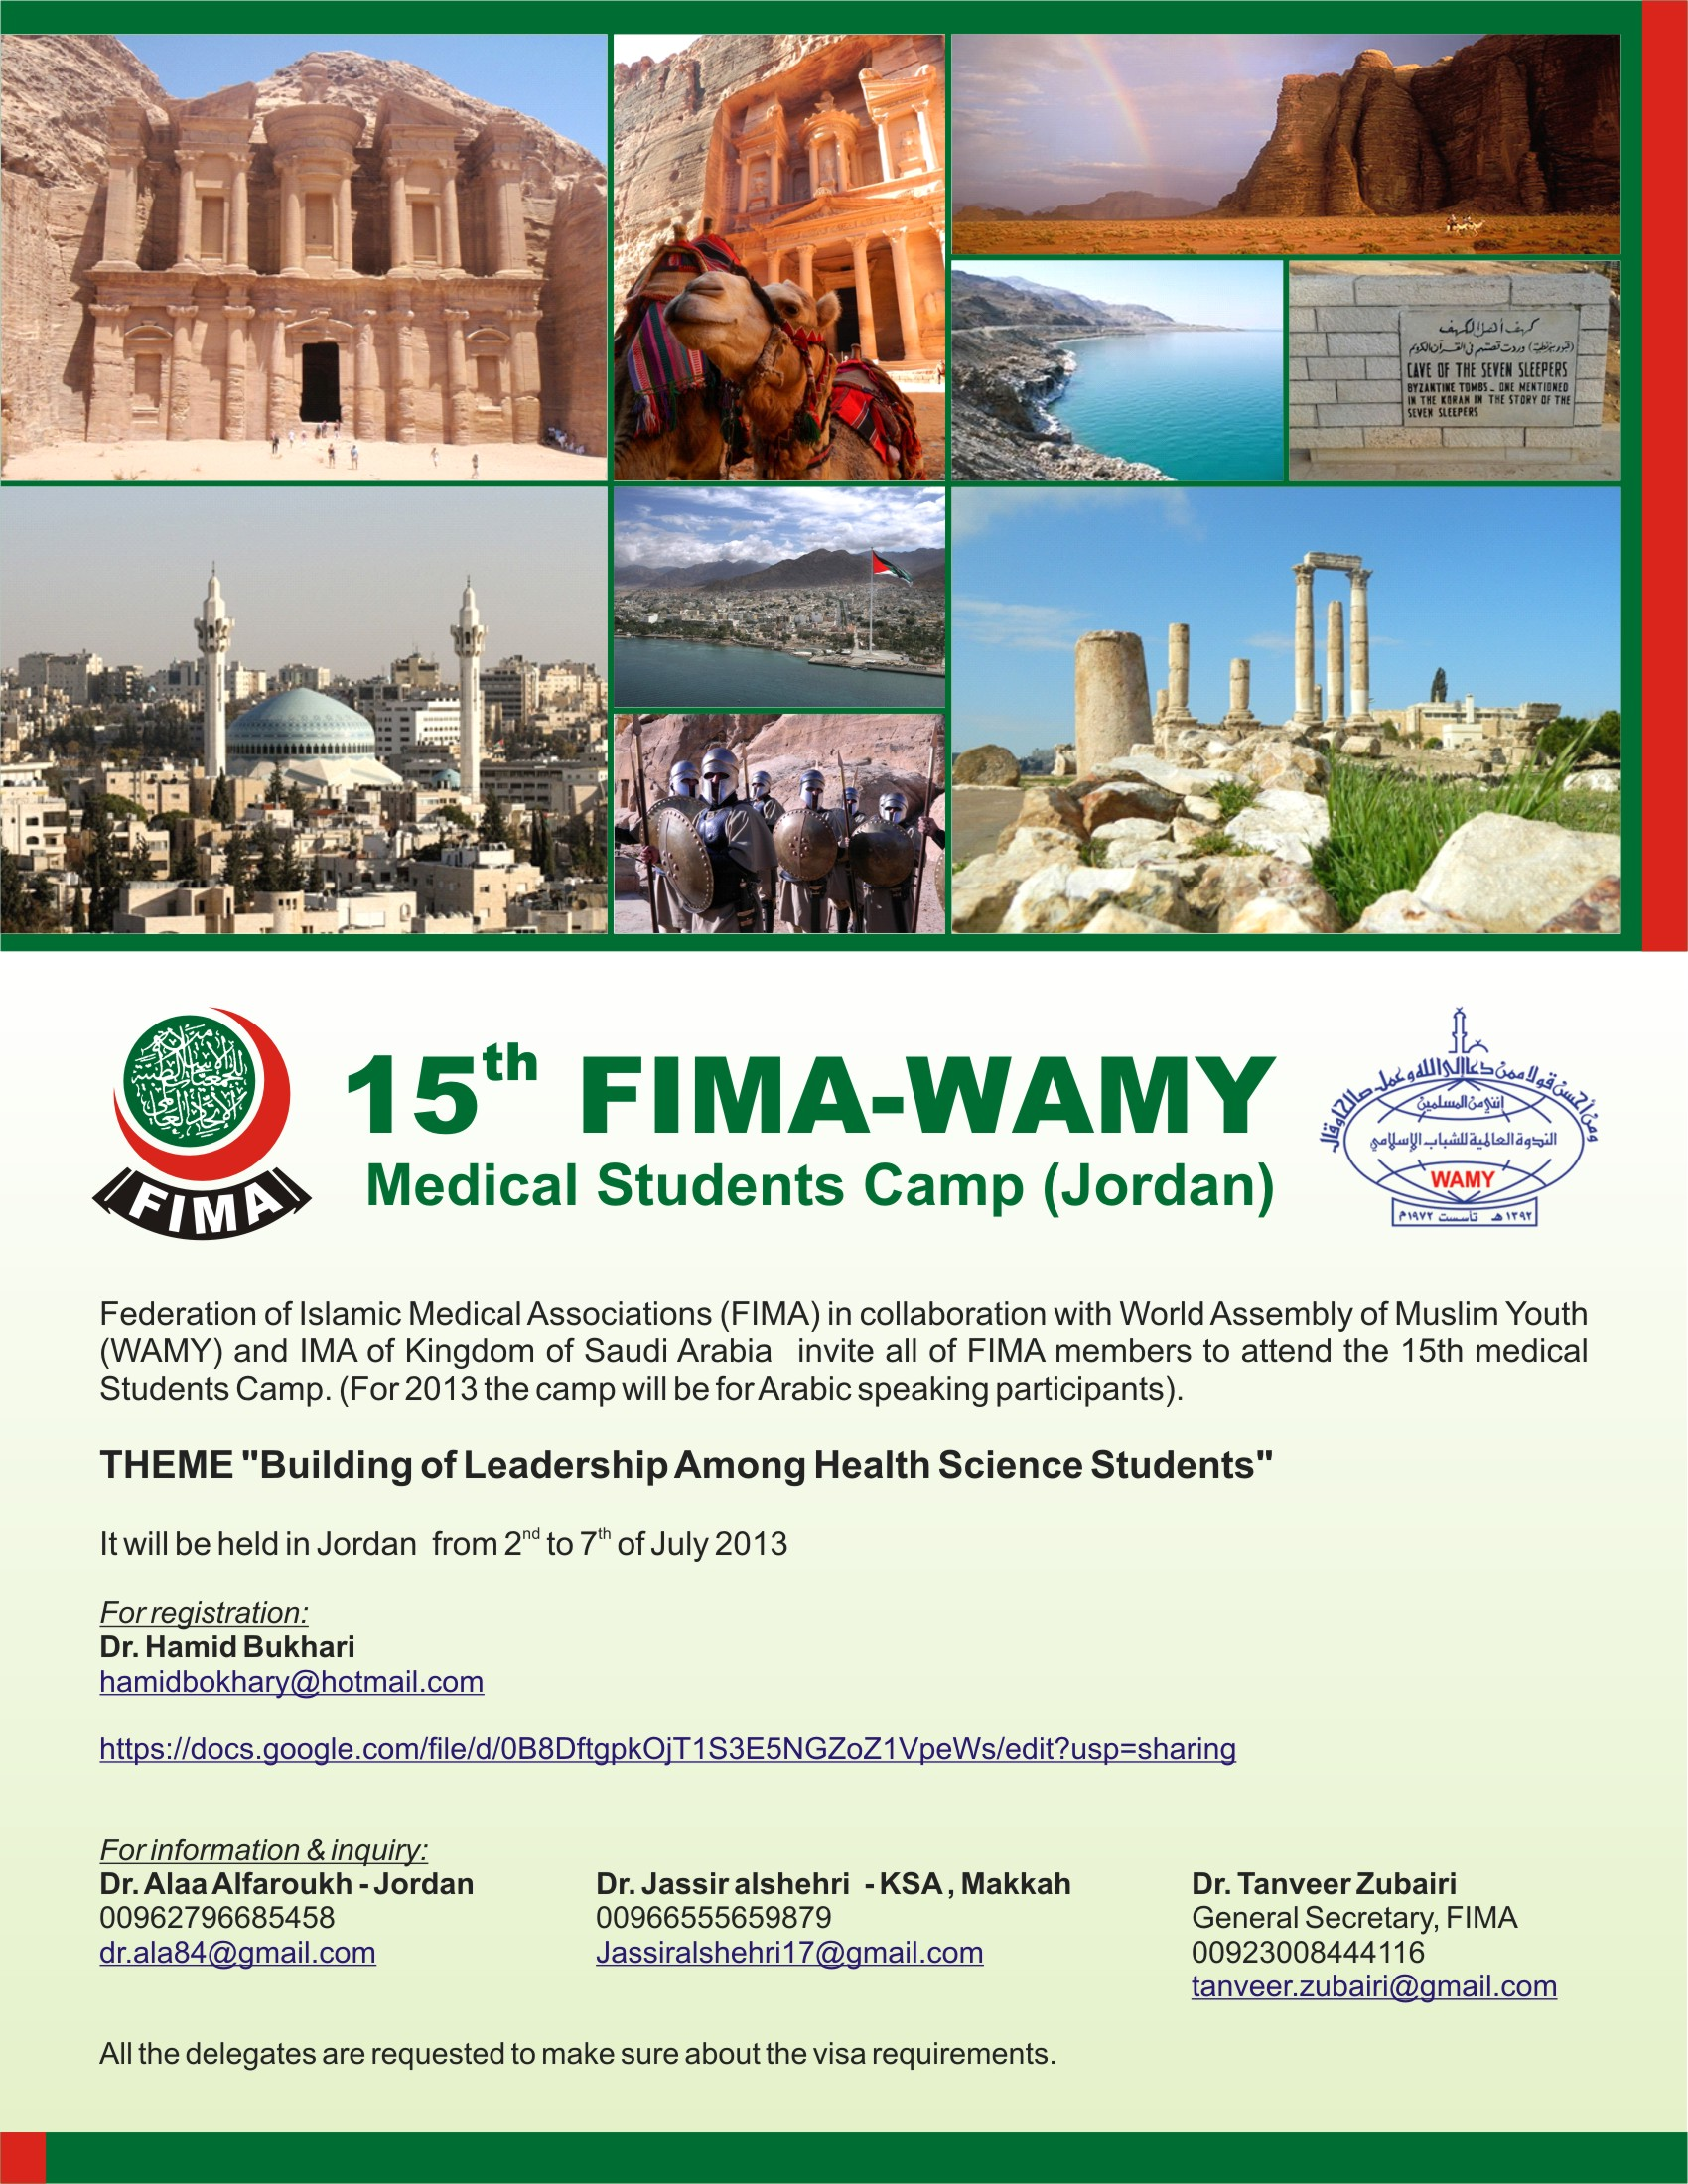 15th FIMA-WAMY Medical Students Camp (Jordan) 2013